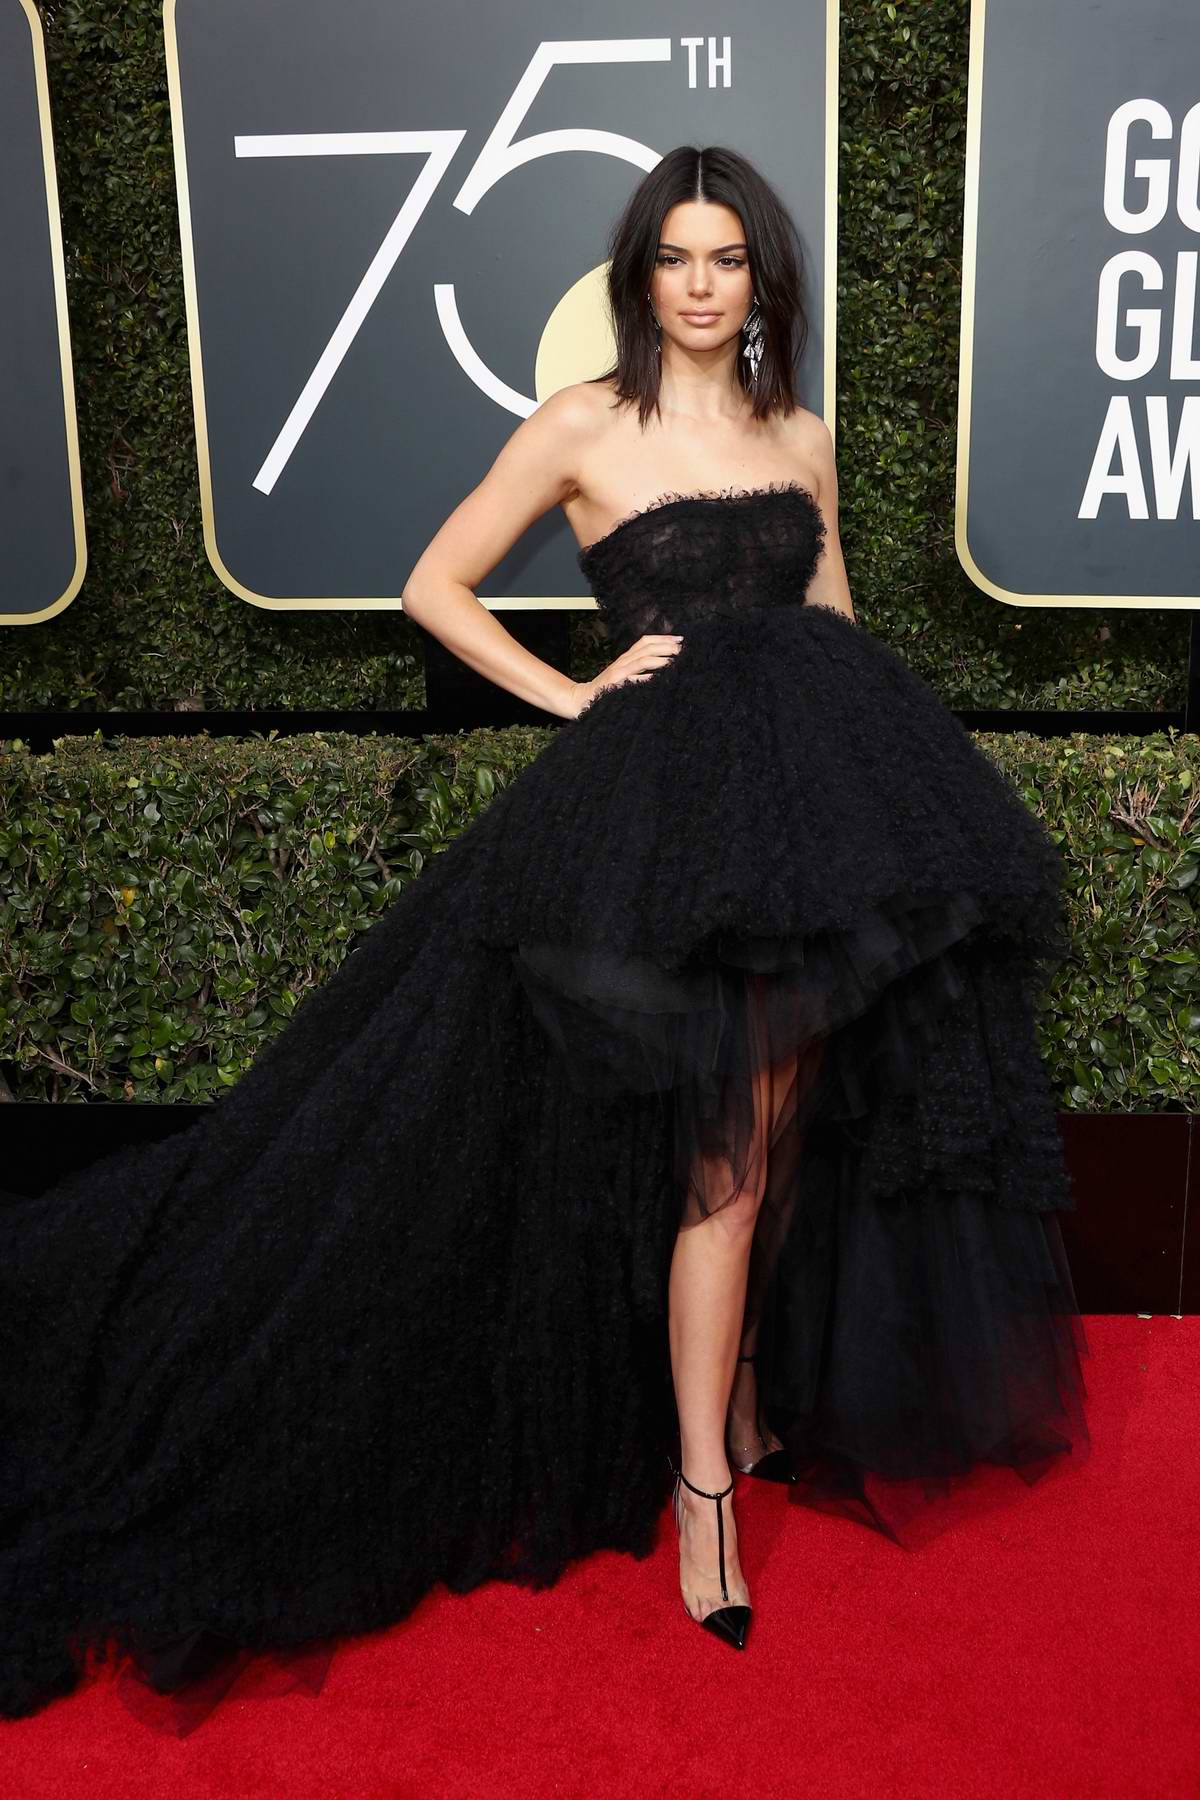 Kendall Jenner attends the 75th Annual Golden Globe Awards in Beverly Hills, Los Angeles